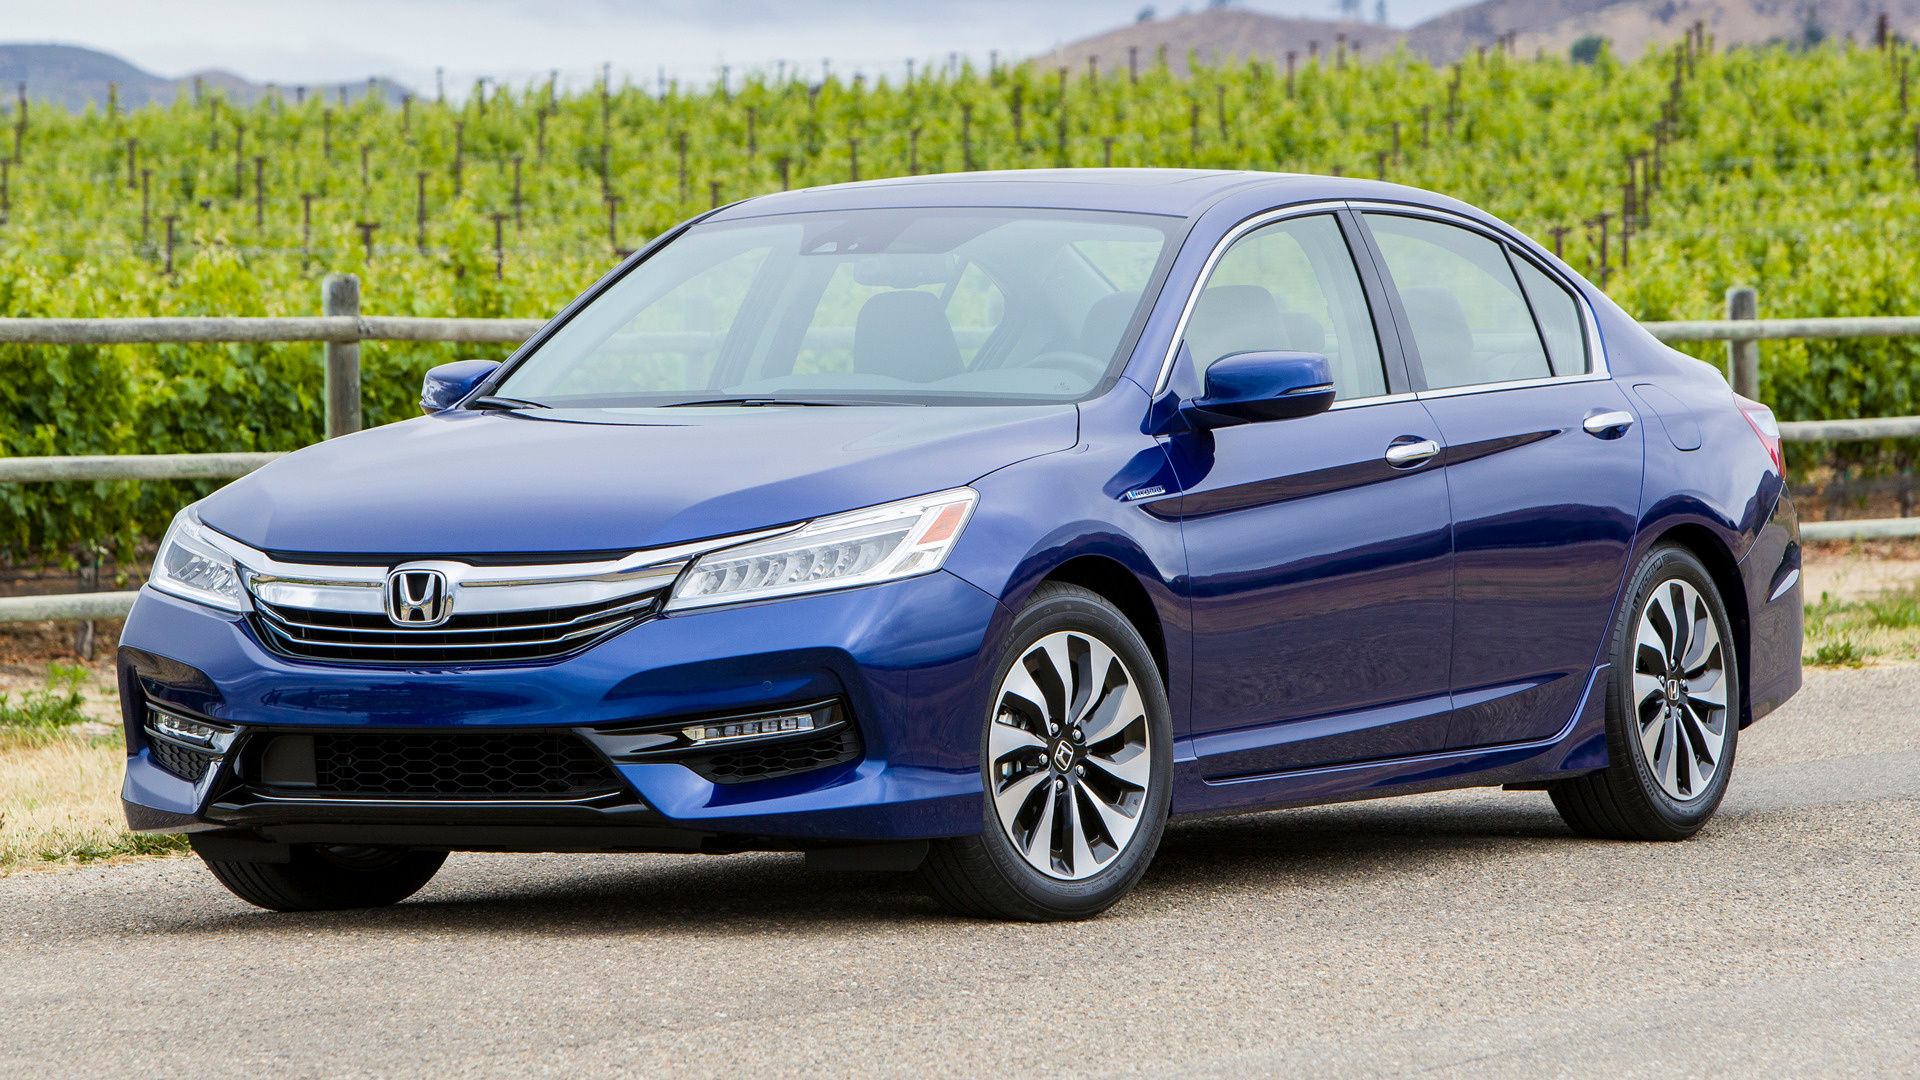 honda accord hybrid touring 2017 us wallpapers and hd images car pixel. Black Bedroom Furniture Sets. Home Design Ideas